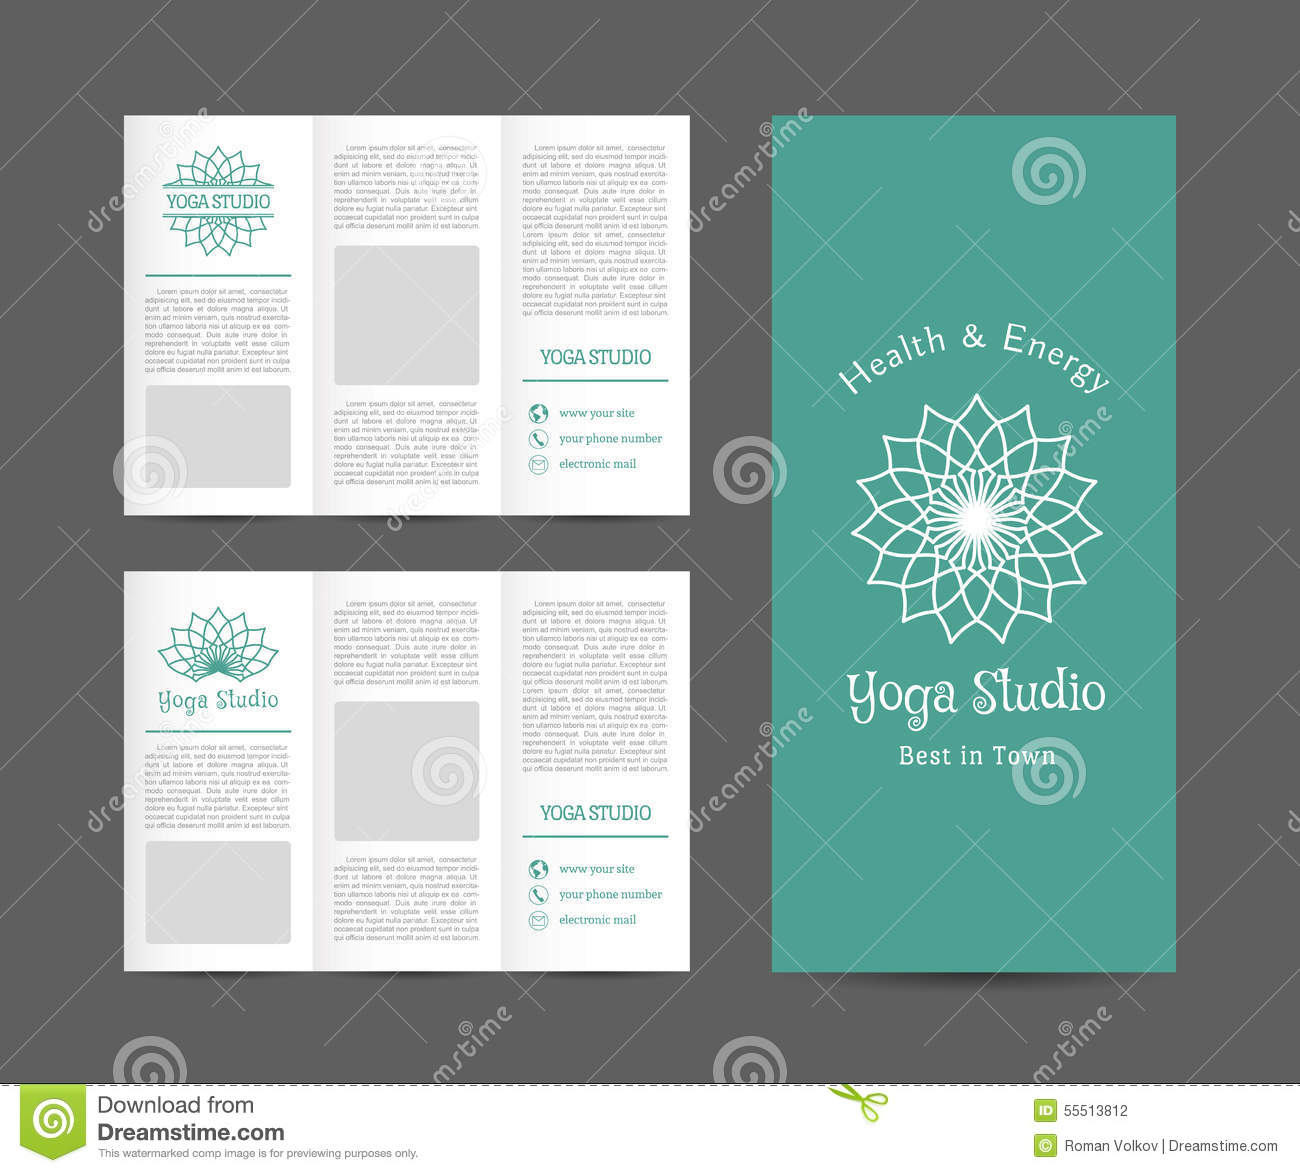 100 chiropractic brochures template flyer templates from chiropractic brochures template template of yoga brochure royalty free stock images image 9623439 pronofoot35fo Image collections